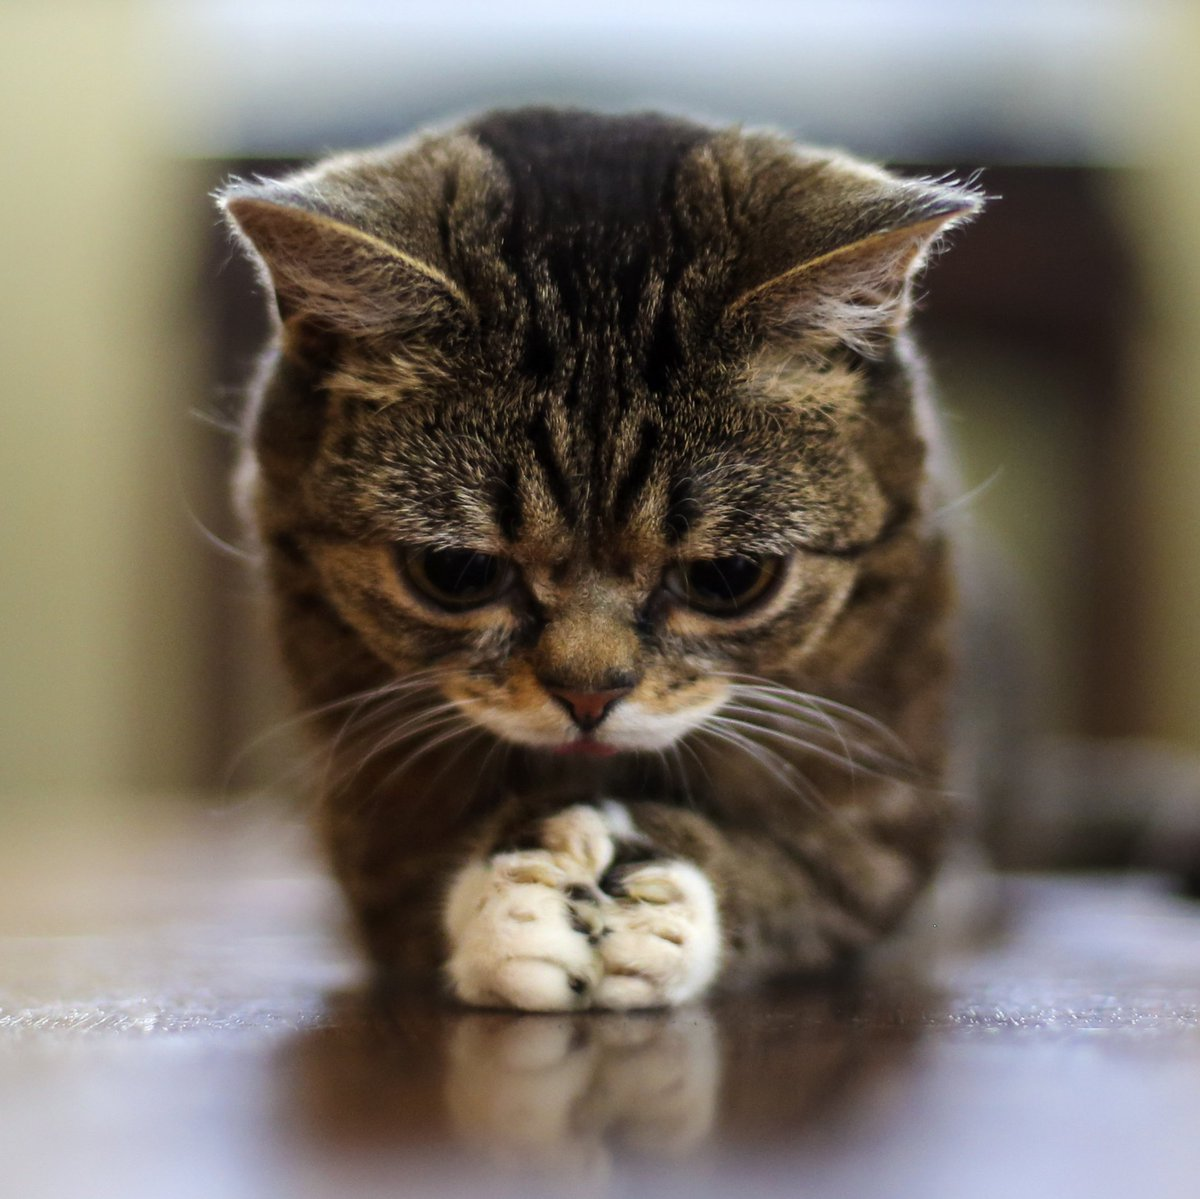 lil bub - photo #21